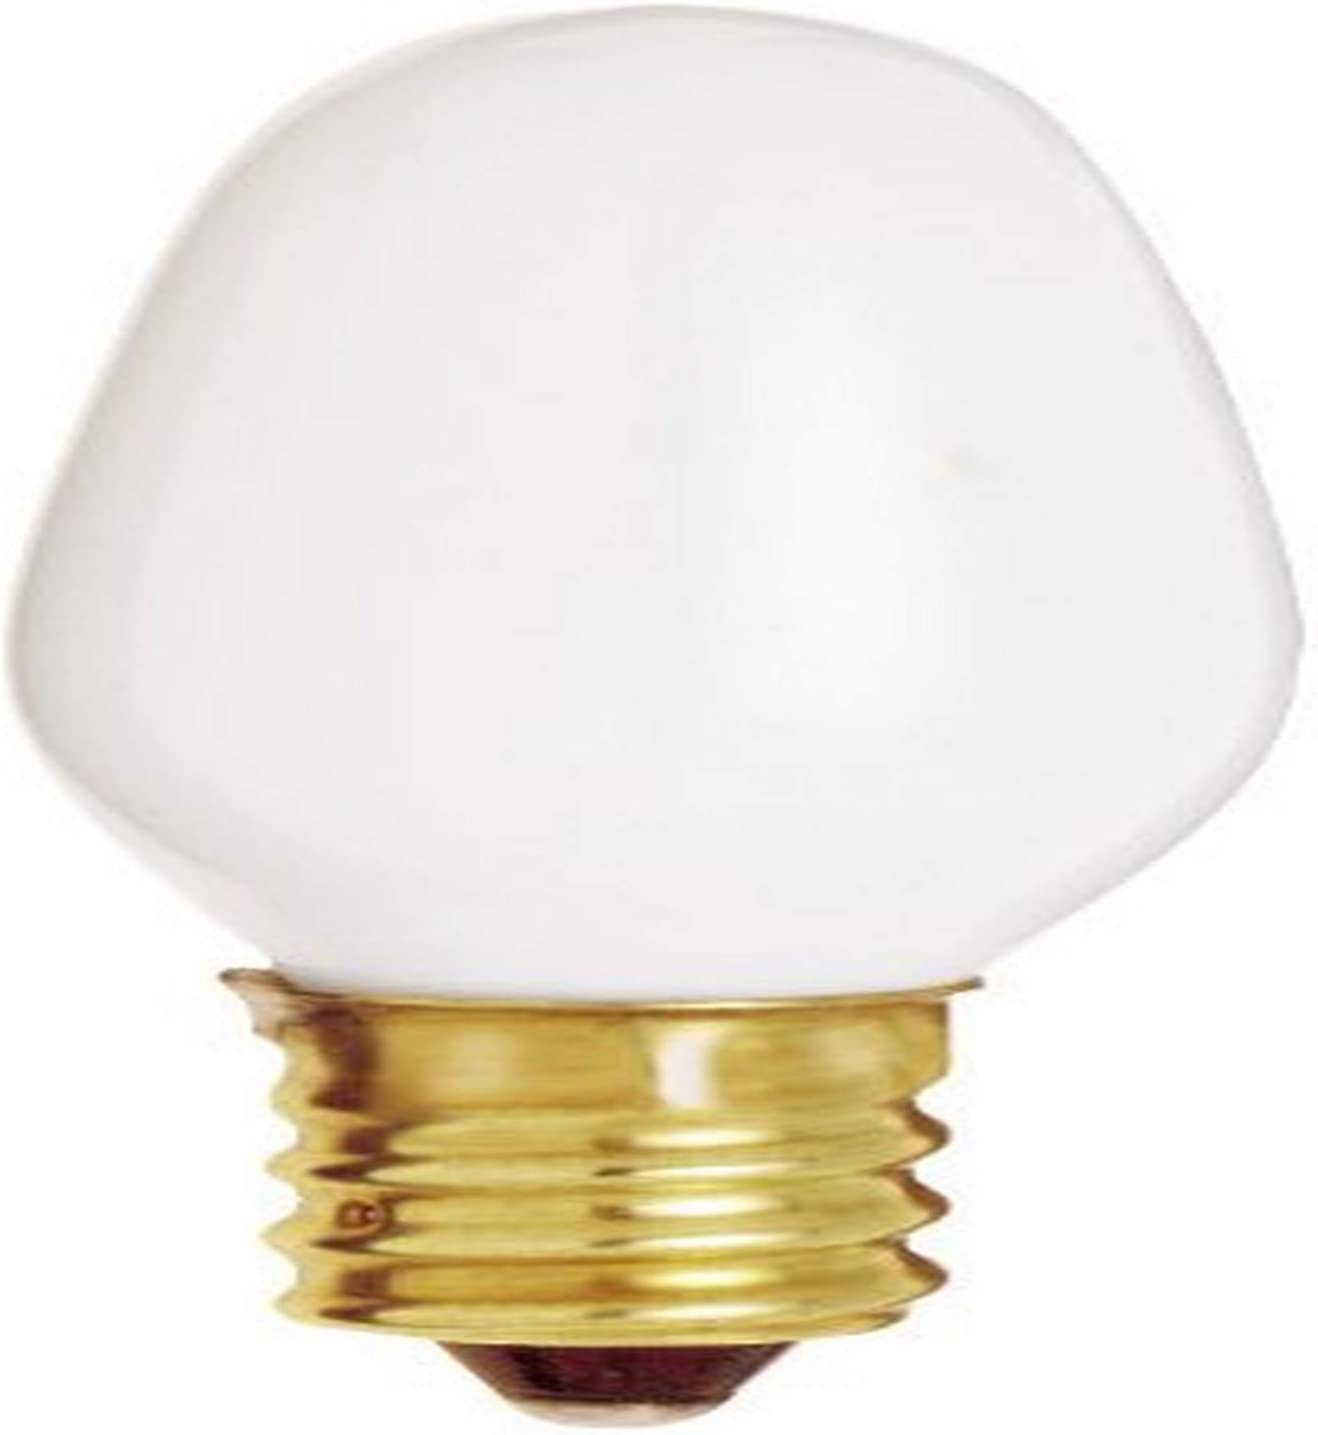 3 Pack Satco S3791 7 Watt C7 Clear Night Light Bulbs with Candle Base 6 Total 2 per Card